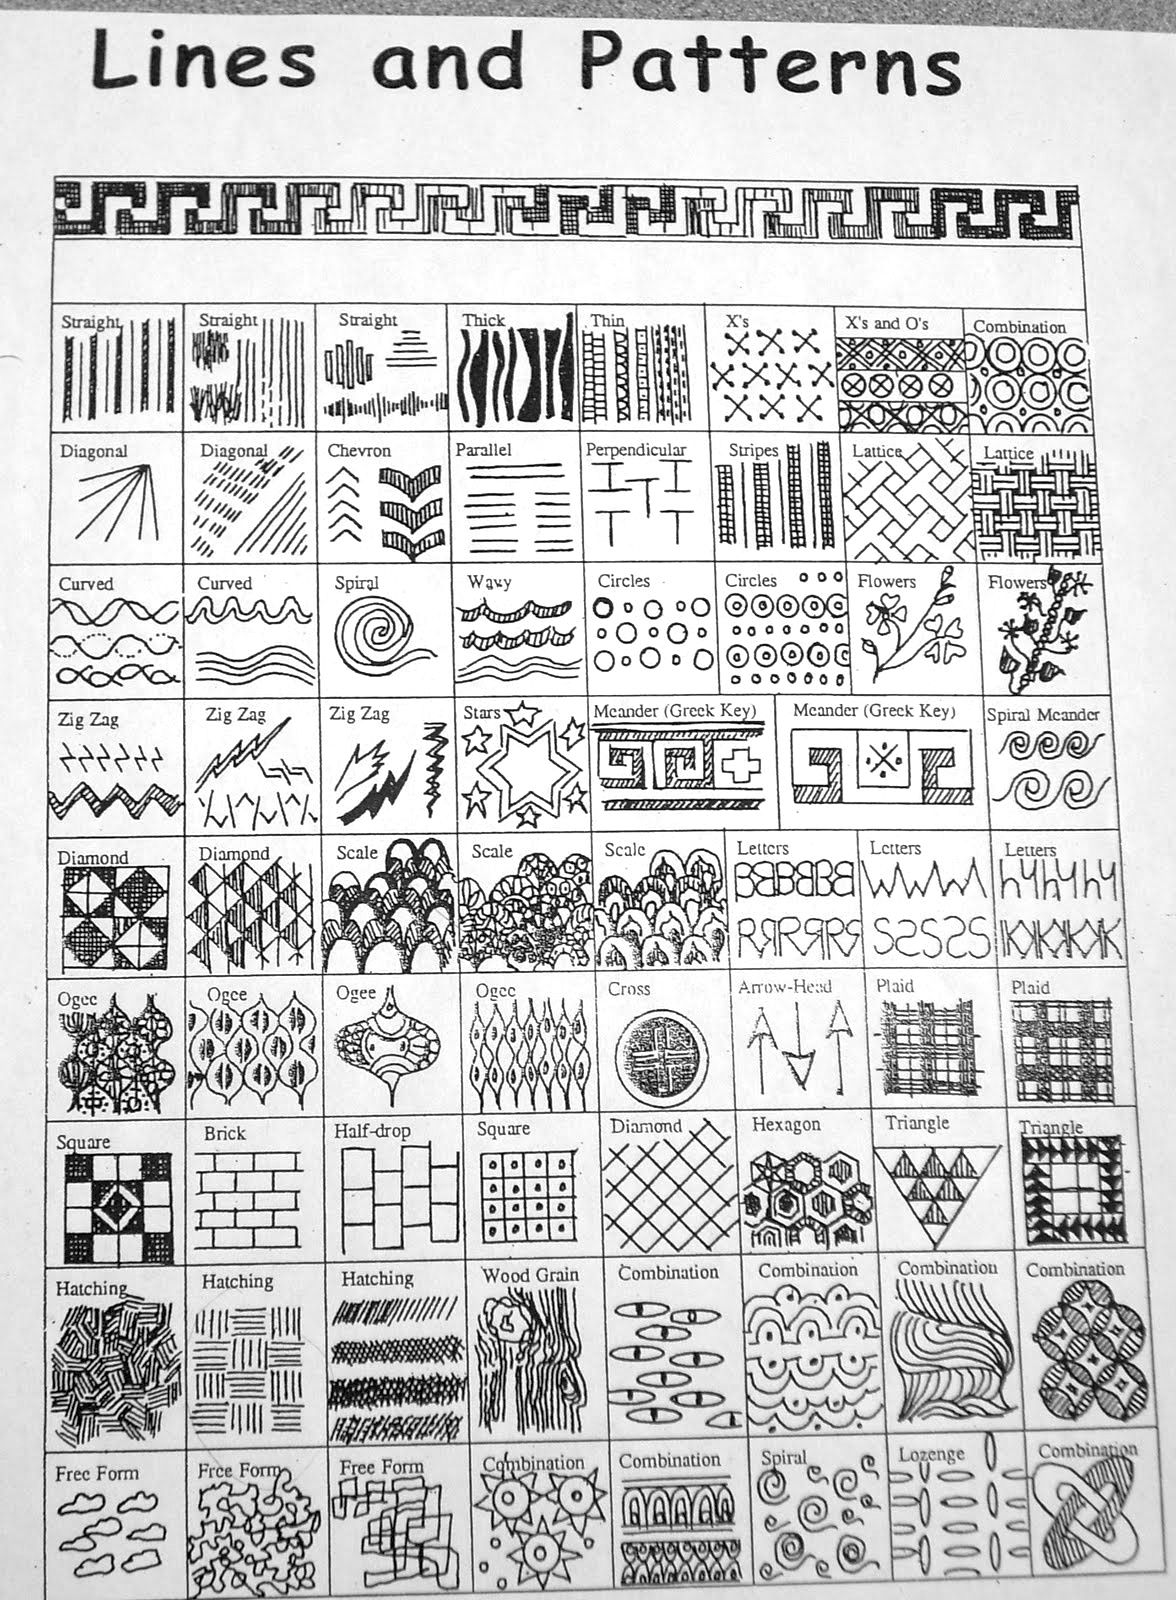 Line And Pattern Poster Name The Patterns And Lines That